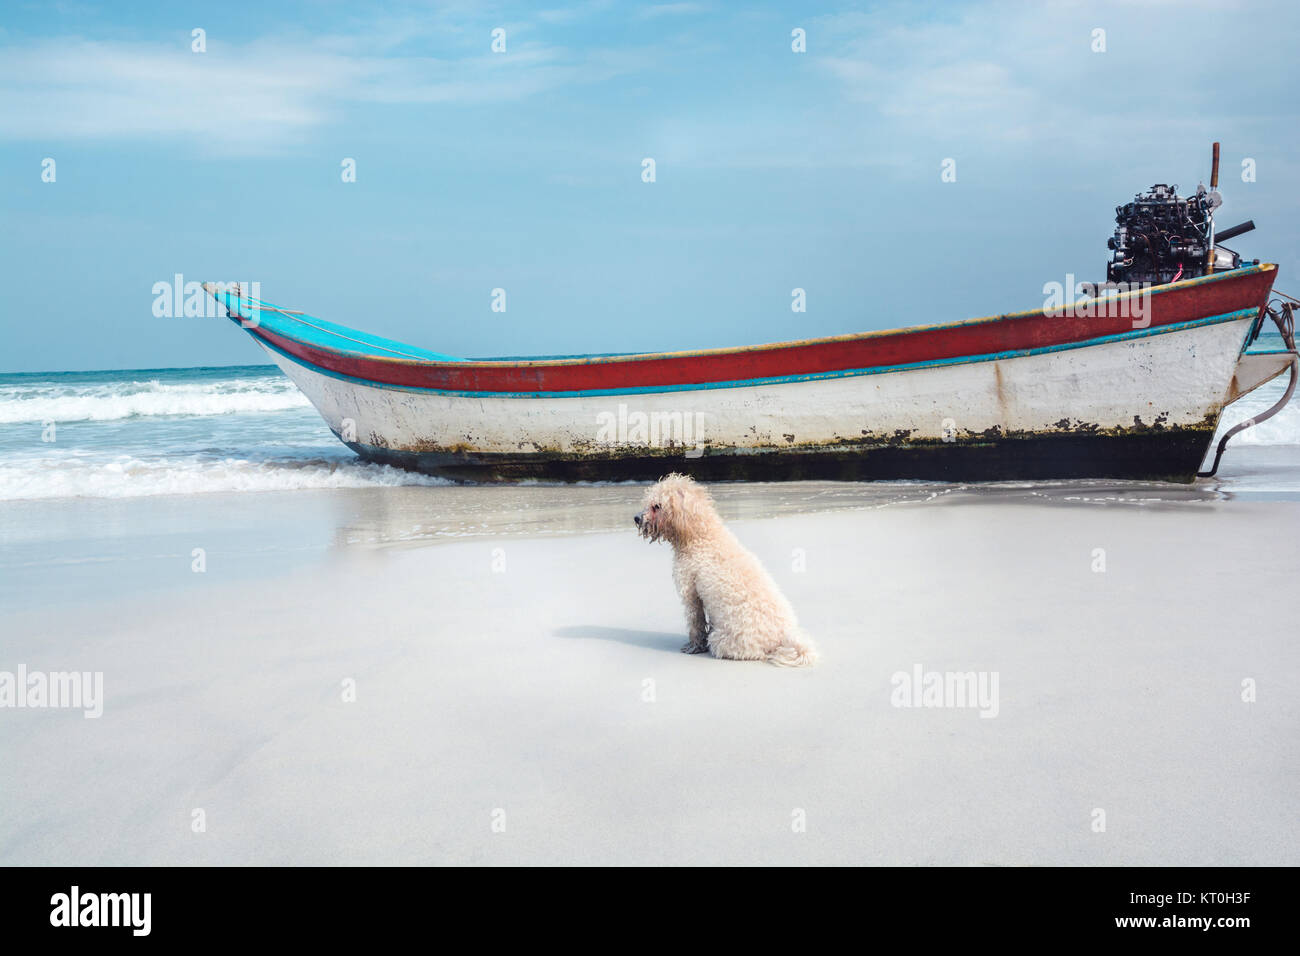 A small poodle dog sitting on a sandy beach next to a boat in Thailand, looks very out of context. - Stock Image